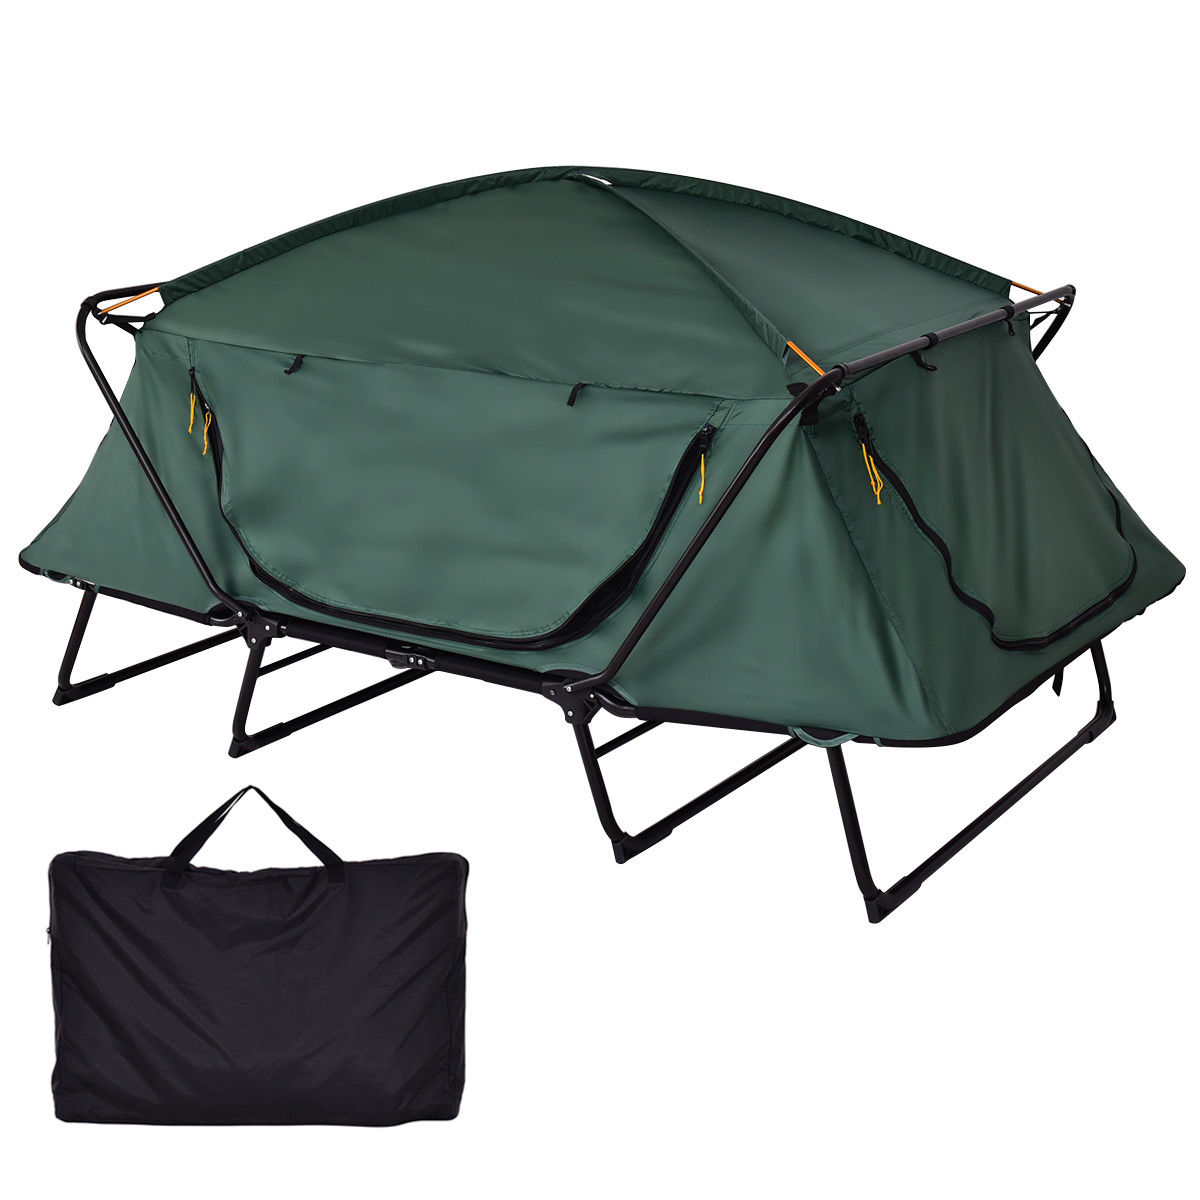 Gymax 2 Person Folding Hiking Outdoor Elevated Camping Te...